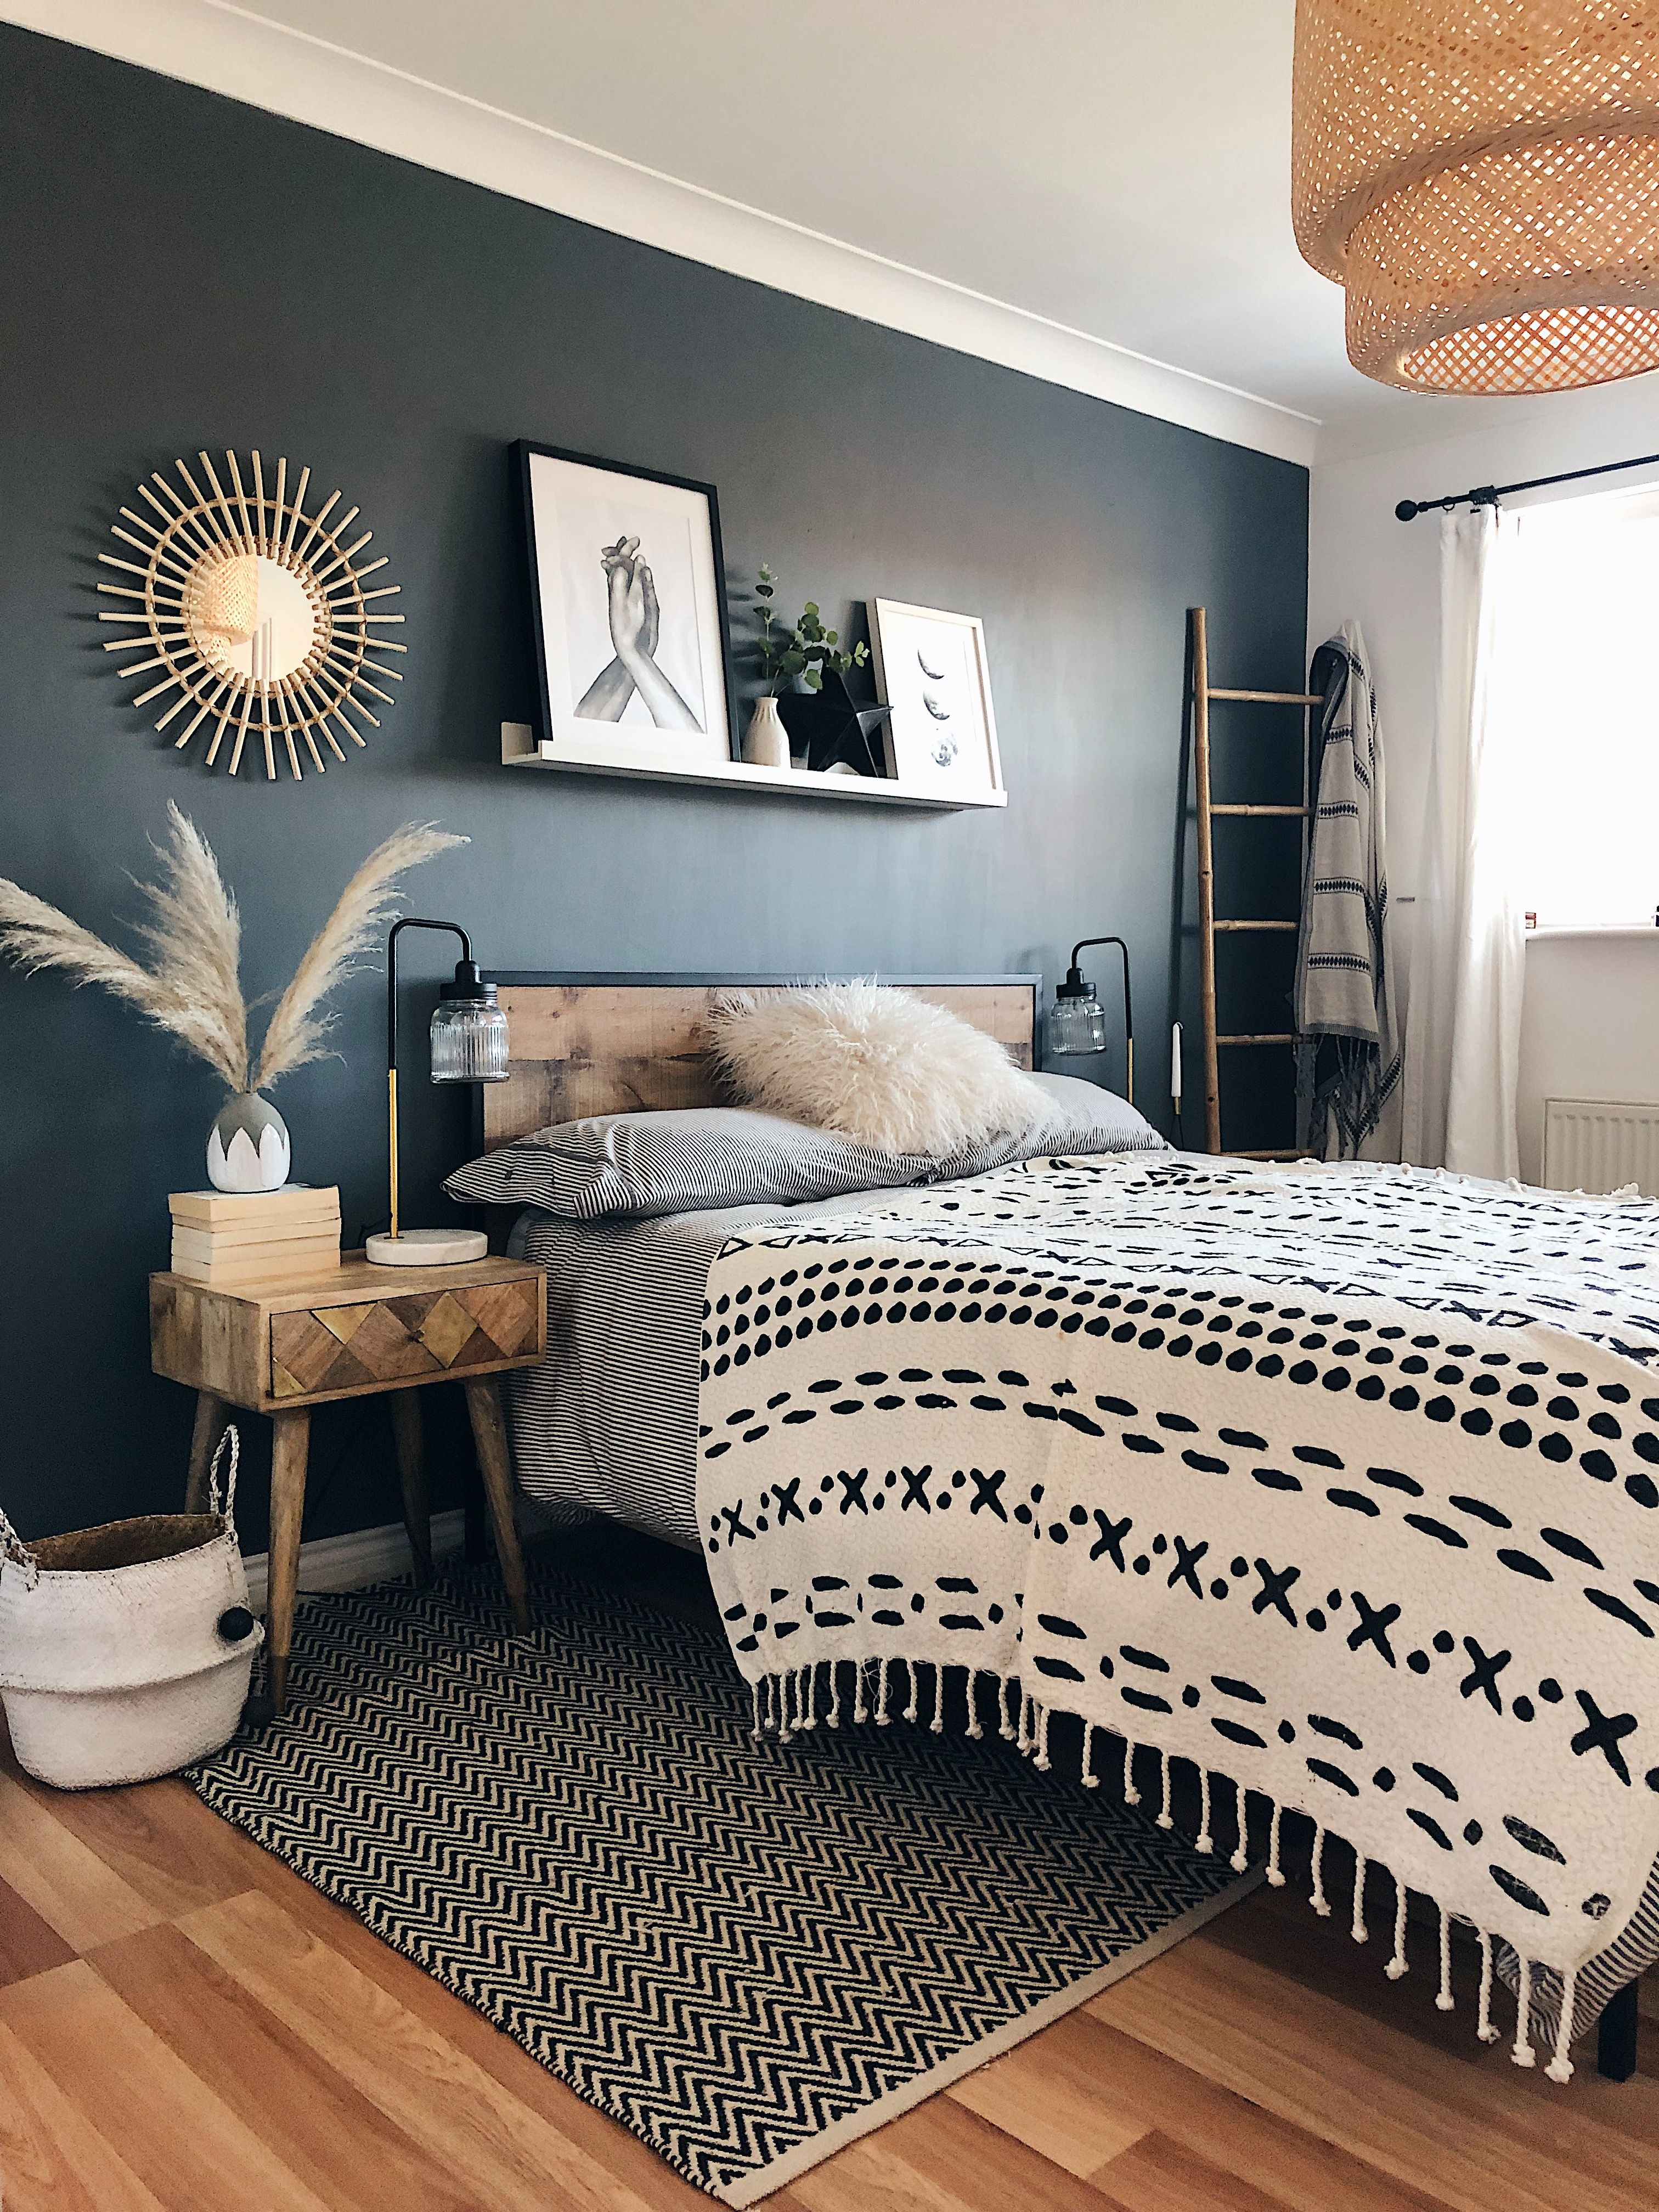 Boho Bedroom Accent Wall Can T Decide Which Detail I Like Best The Black Accent Wall The Boho Bedding The Bench All Of Home Decor Bedroom Bedroom Interior Apartment Living Room